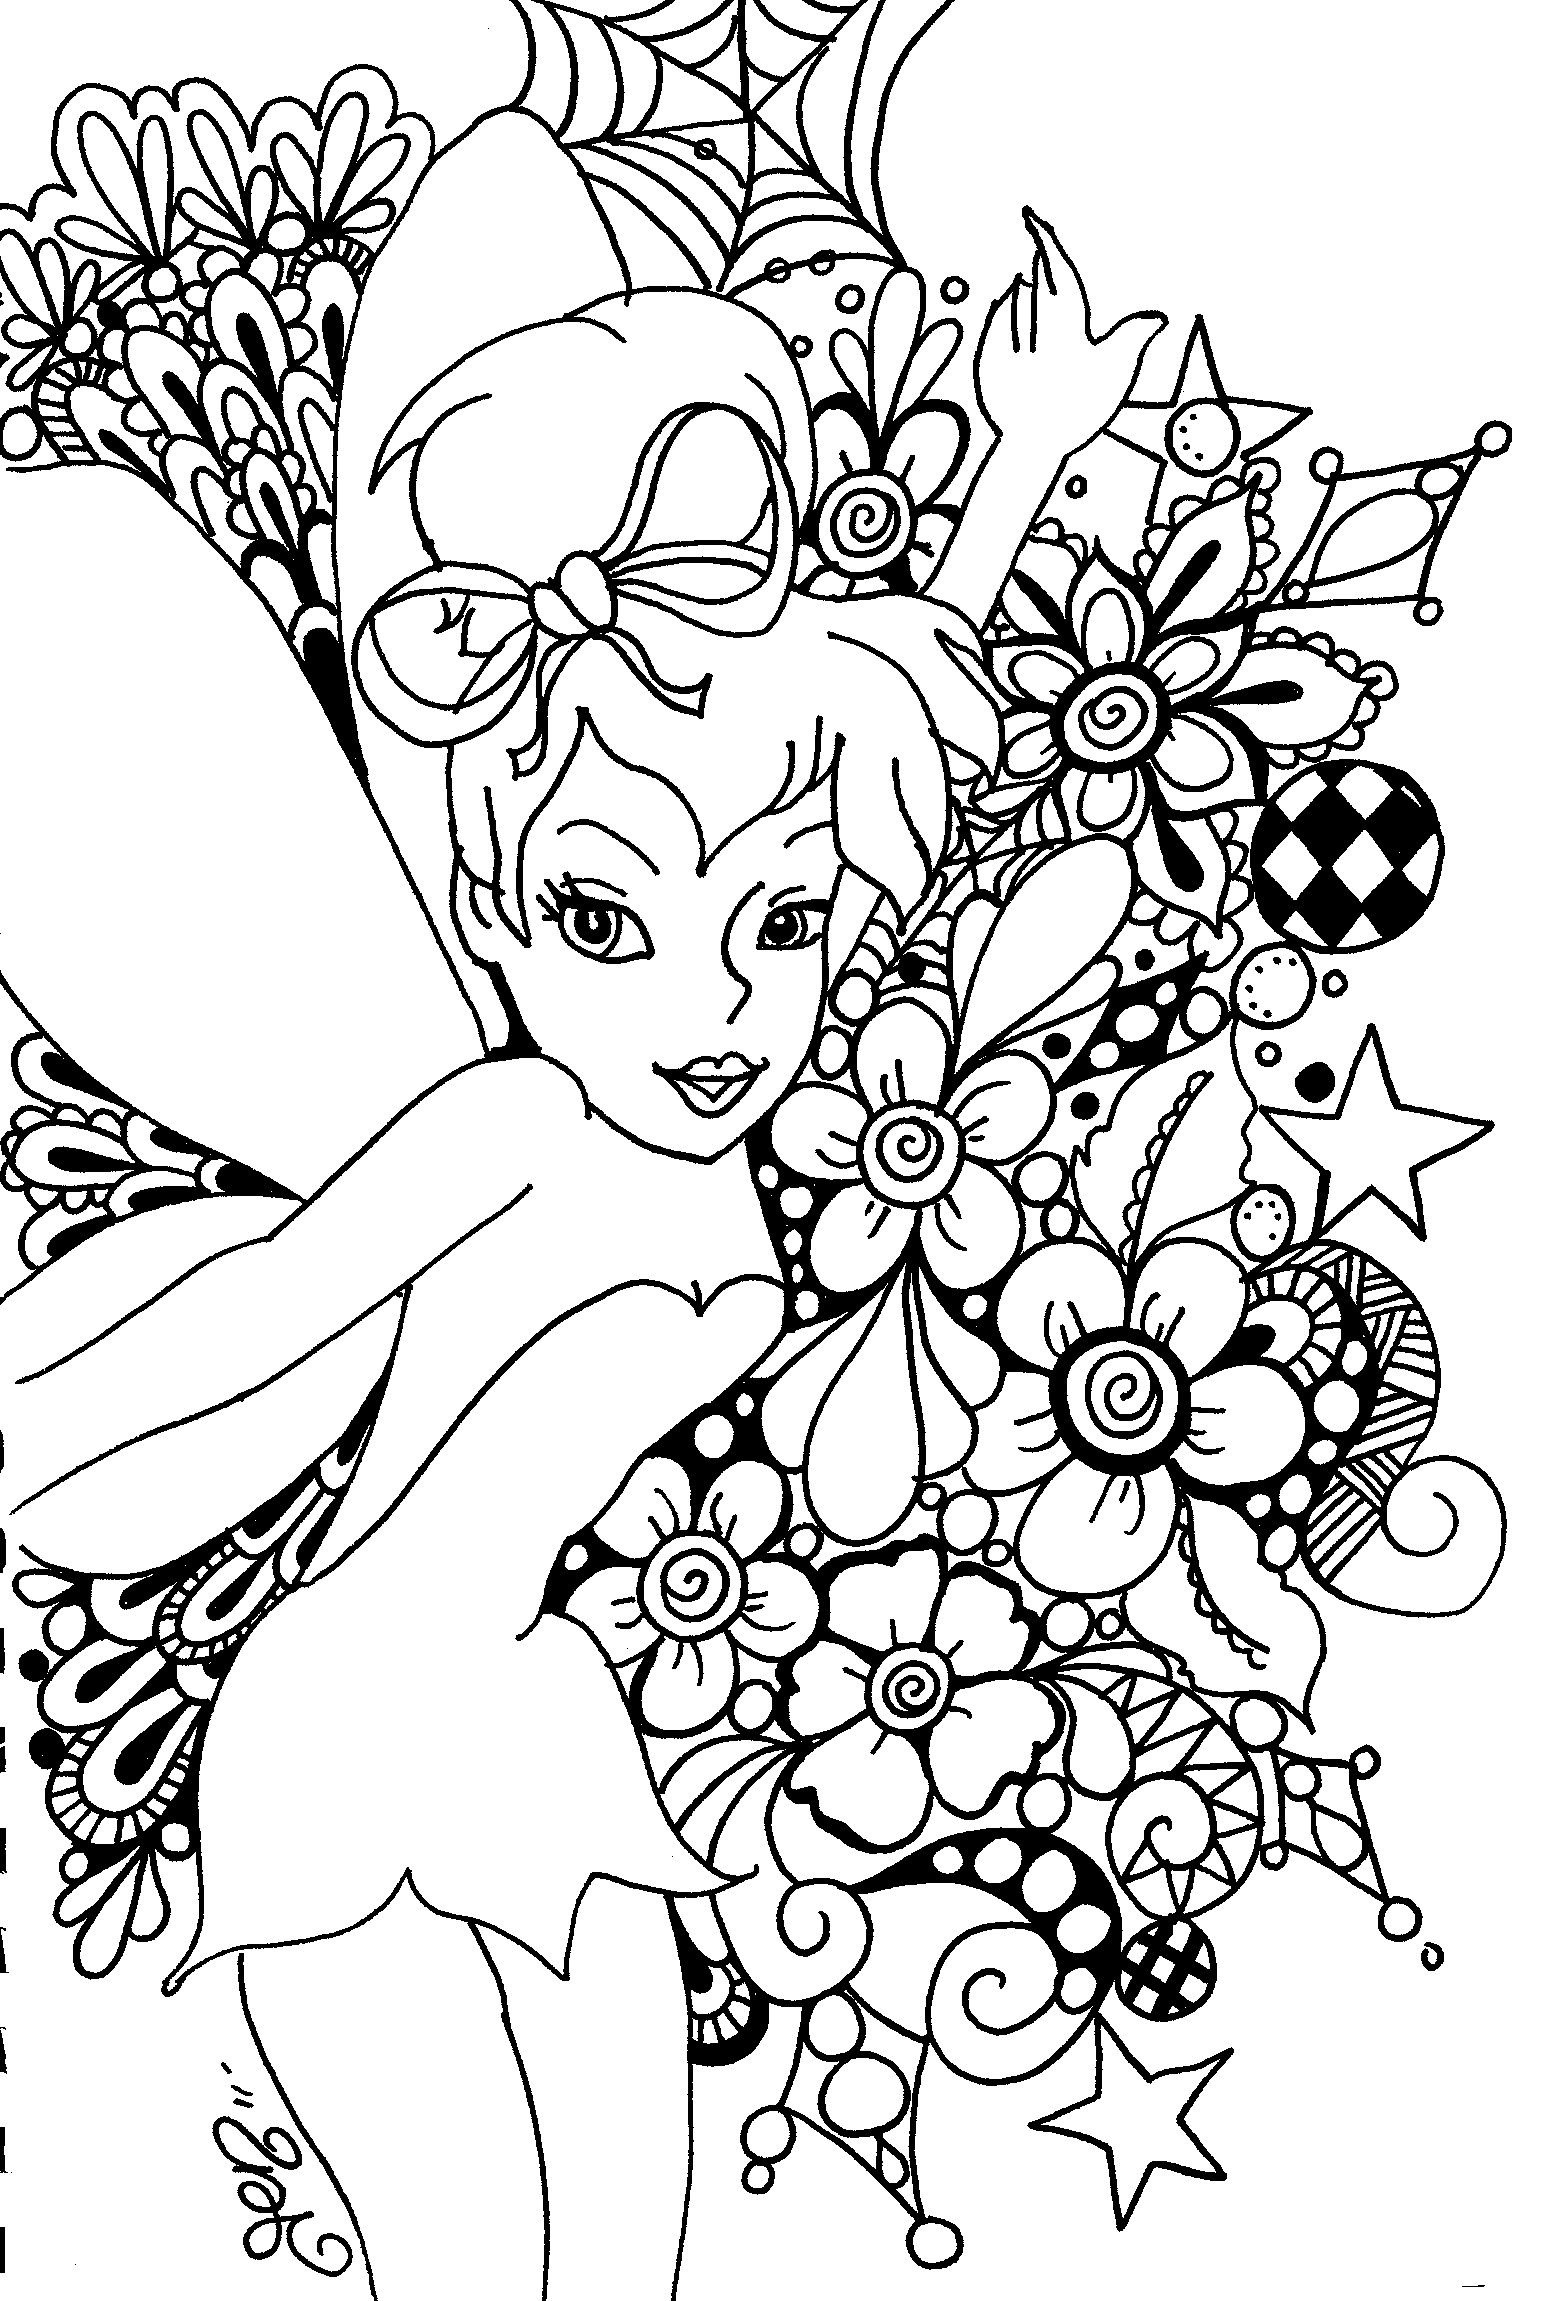 Free Printable Tinkerbell Coloring Pages For Kids   Art!!   Fairy - Tinkerbell Coloring Pages Printable Free